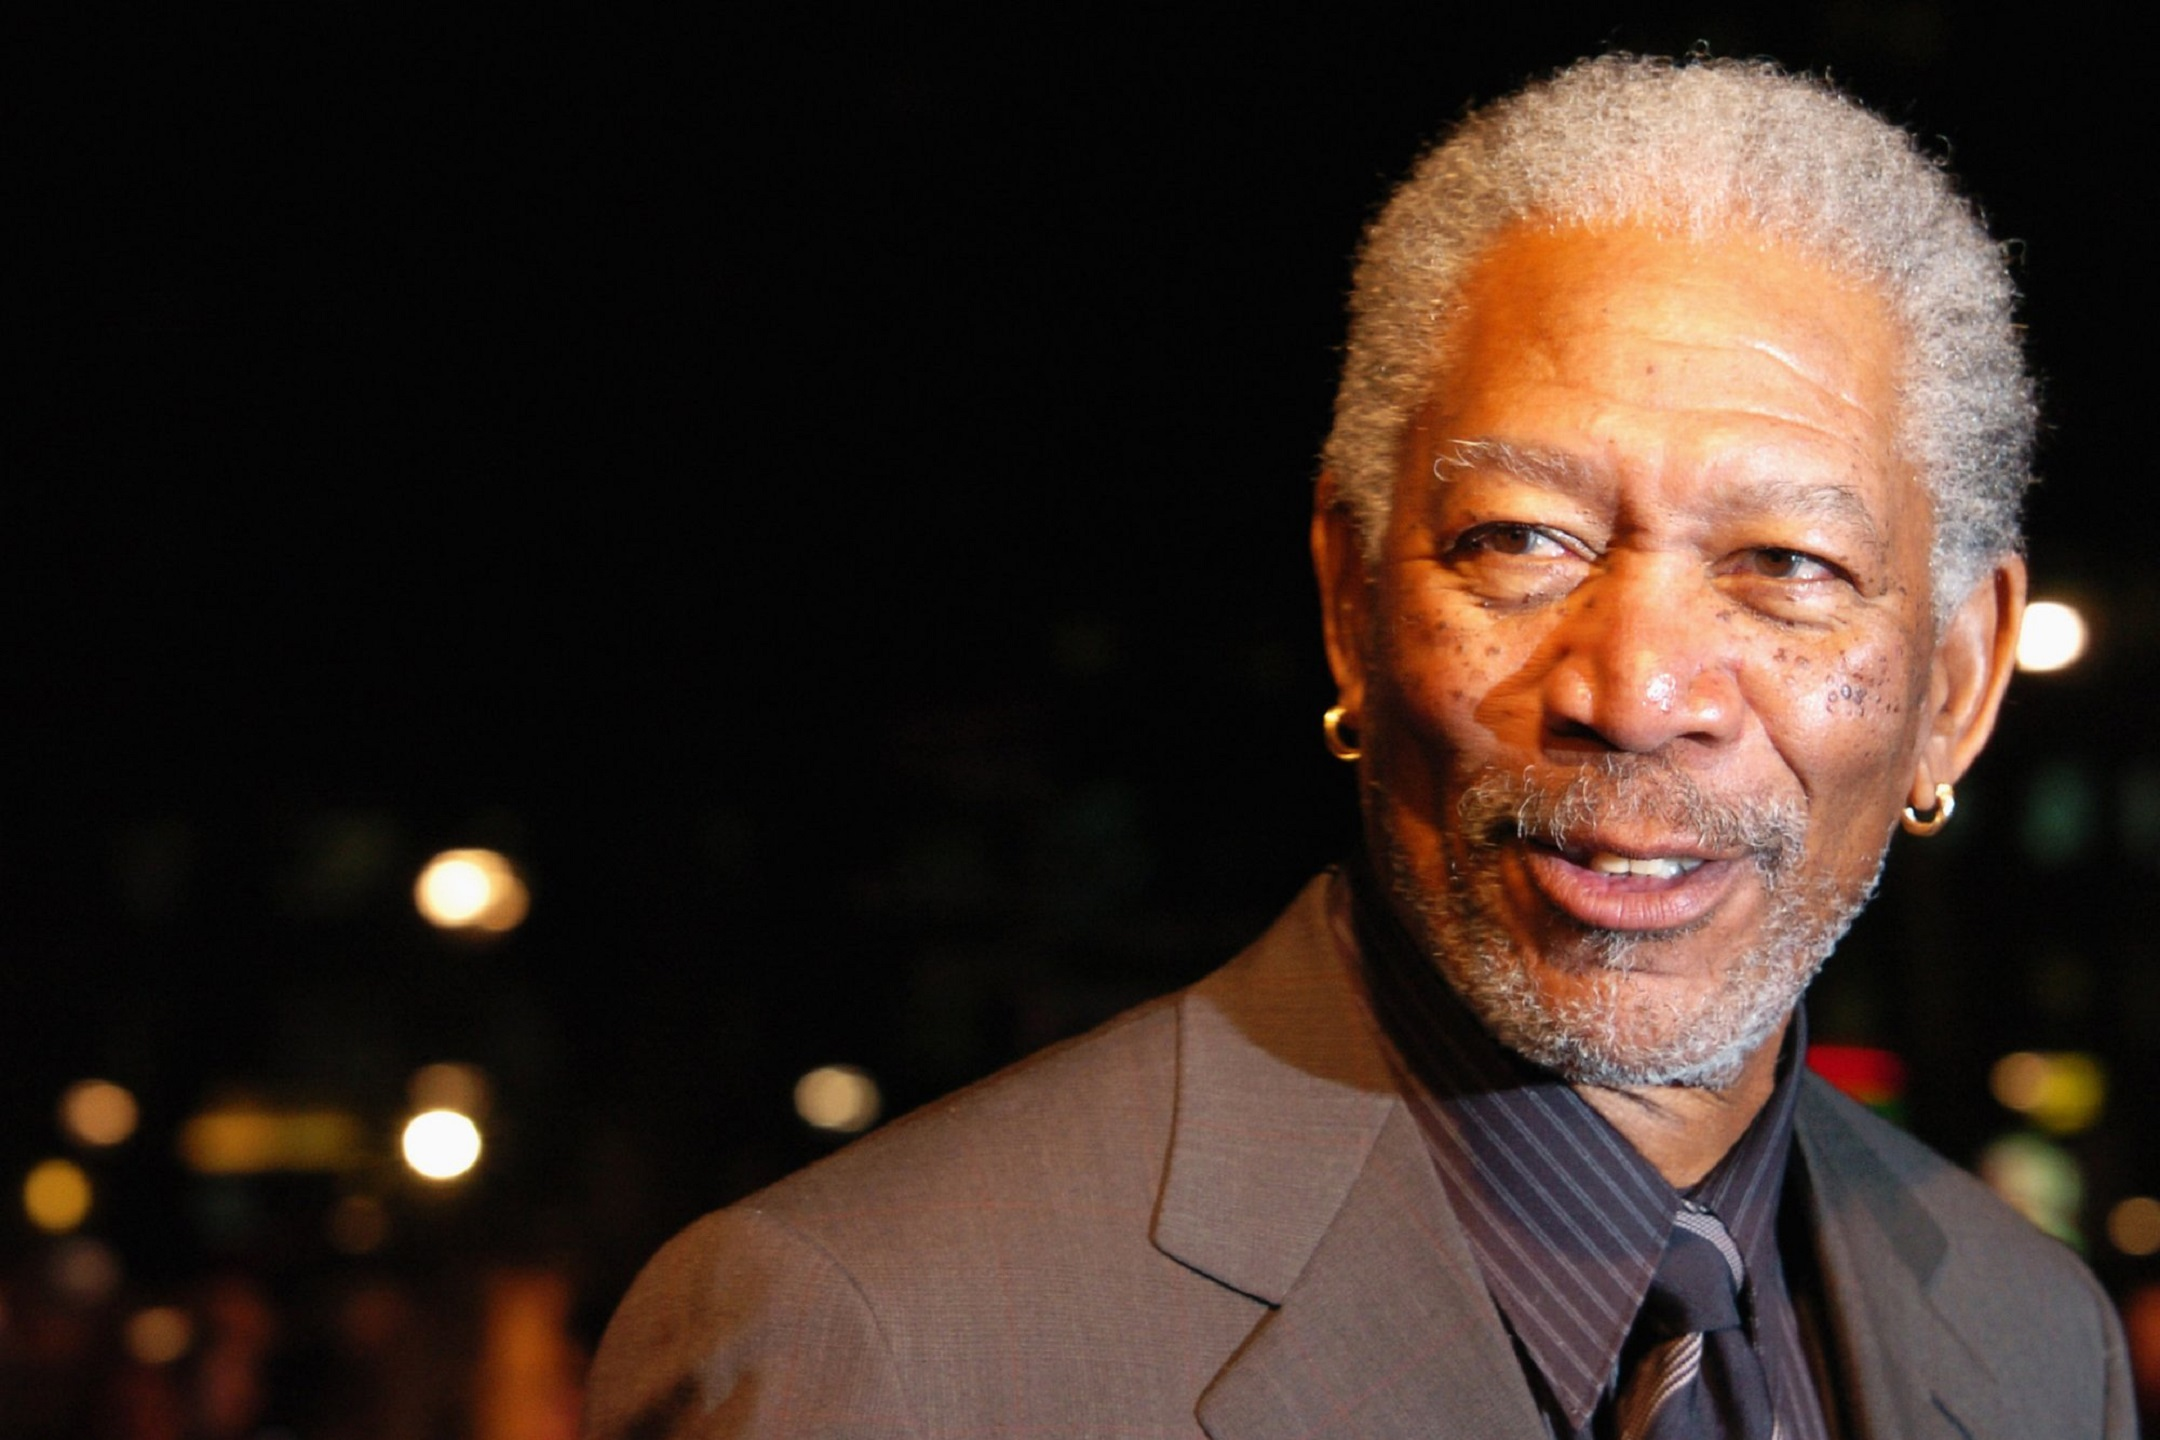 morgan freeman celebrity hd wallpaper 59383